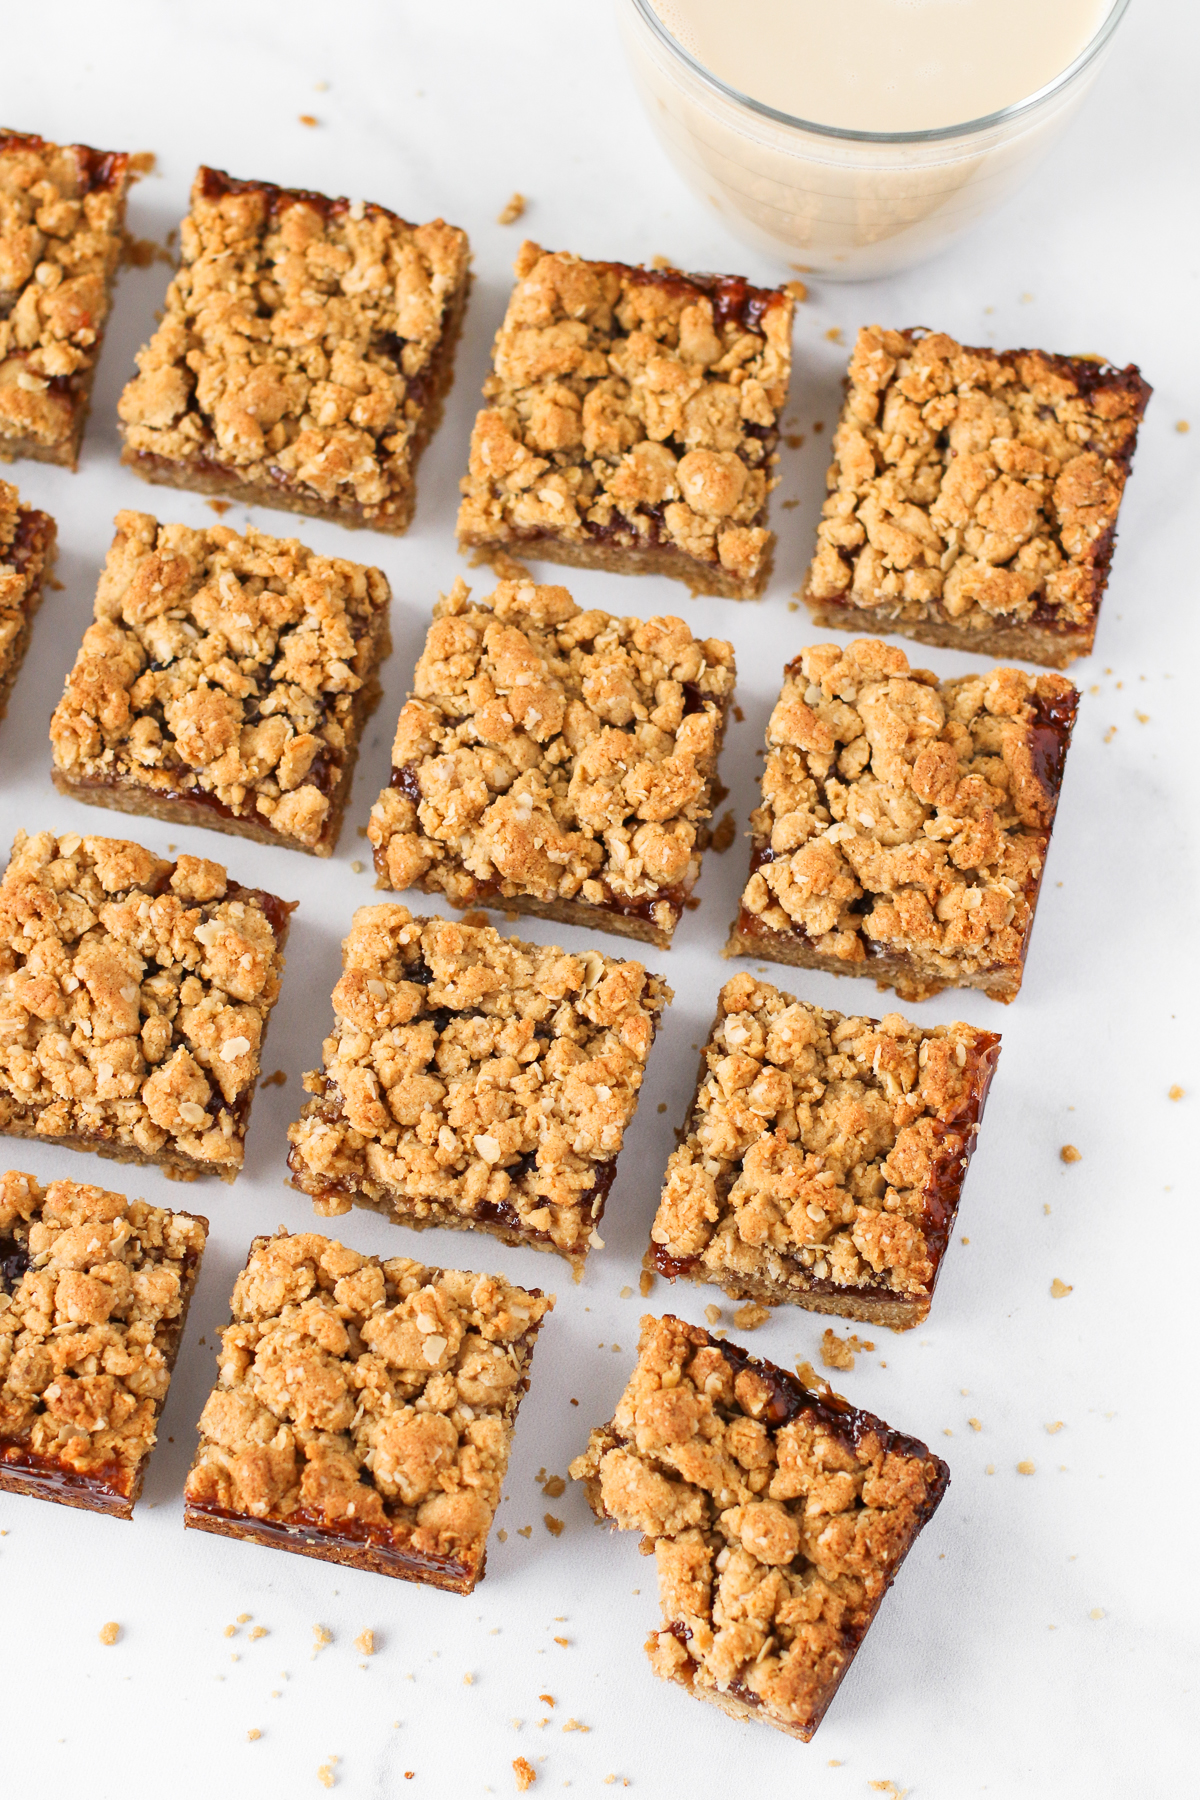 Gluten Free Vegan Peanut Butter and Jelly Oat Bars. The classic combination of creamy peanut butter and strawberry jelly in a oat crumb bar. What's not to love?